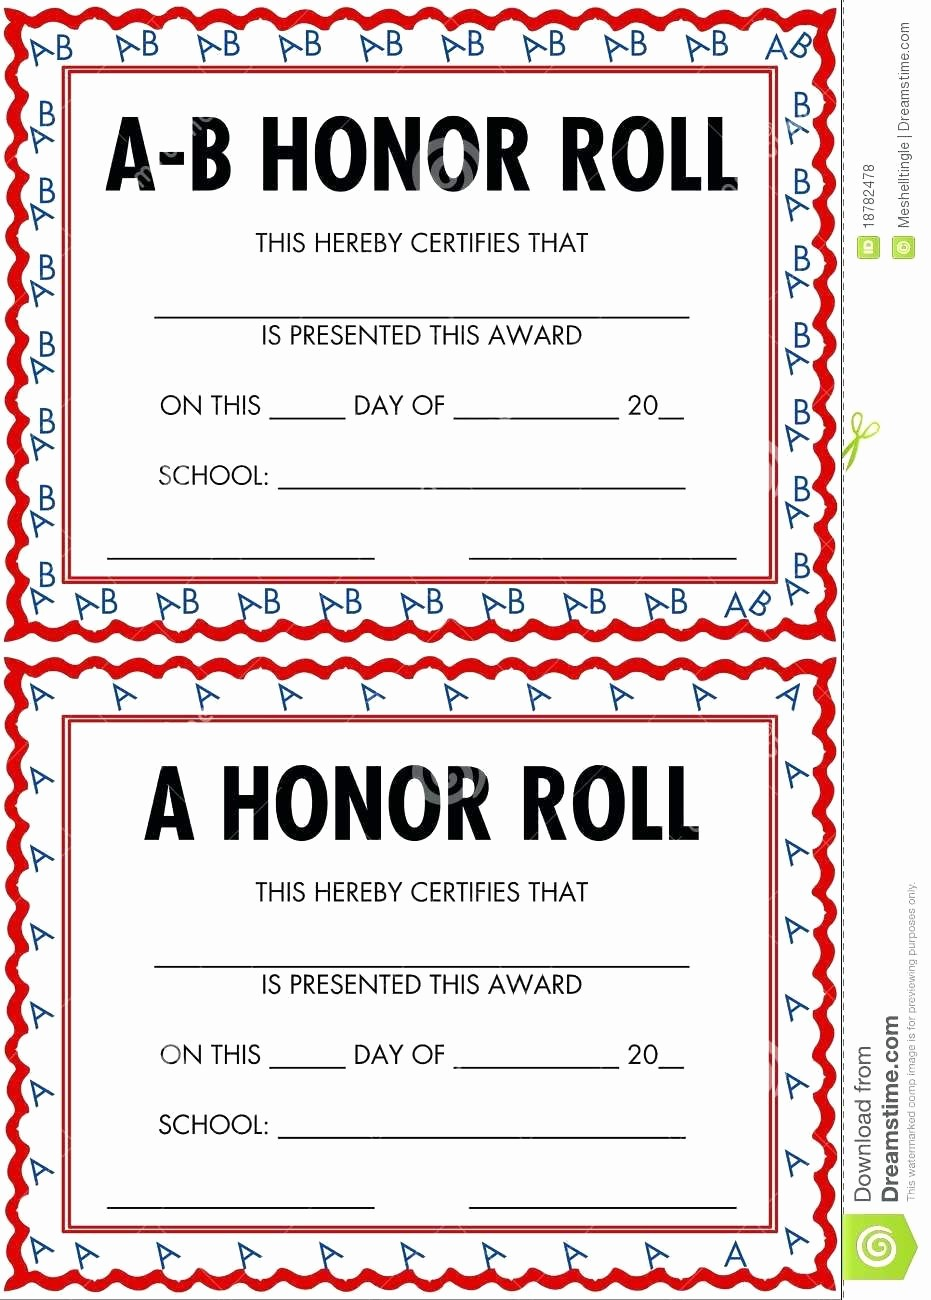 Honor Roll Certificate Template Word New Template Honor Roll Certificate Template